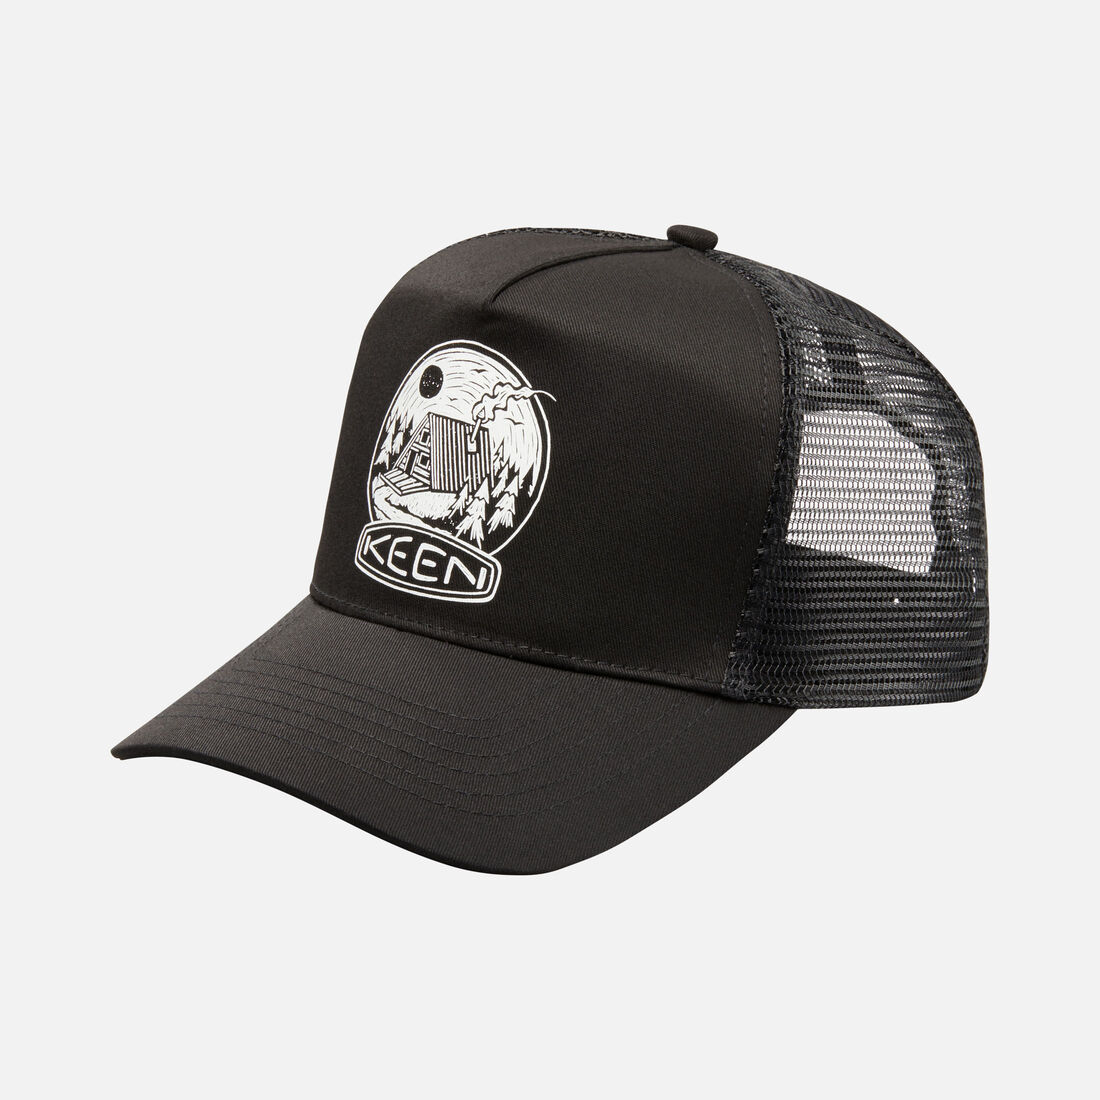 49f70198848  Cabin  Mesh Hat in Black - large view.